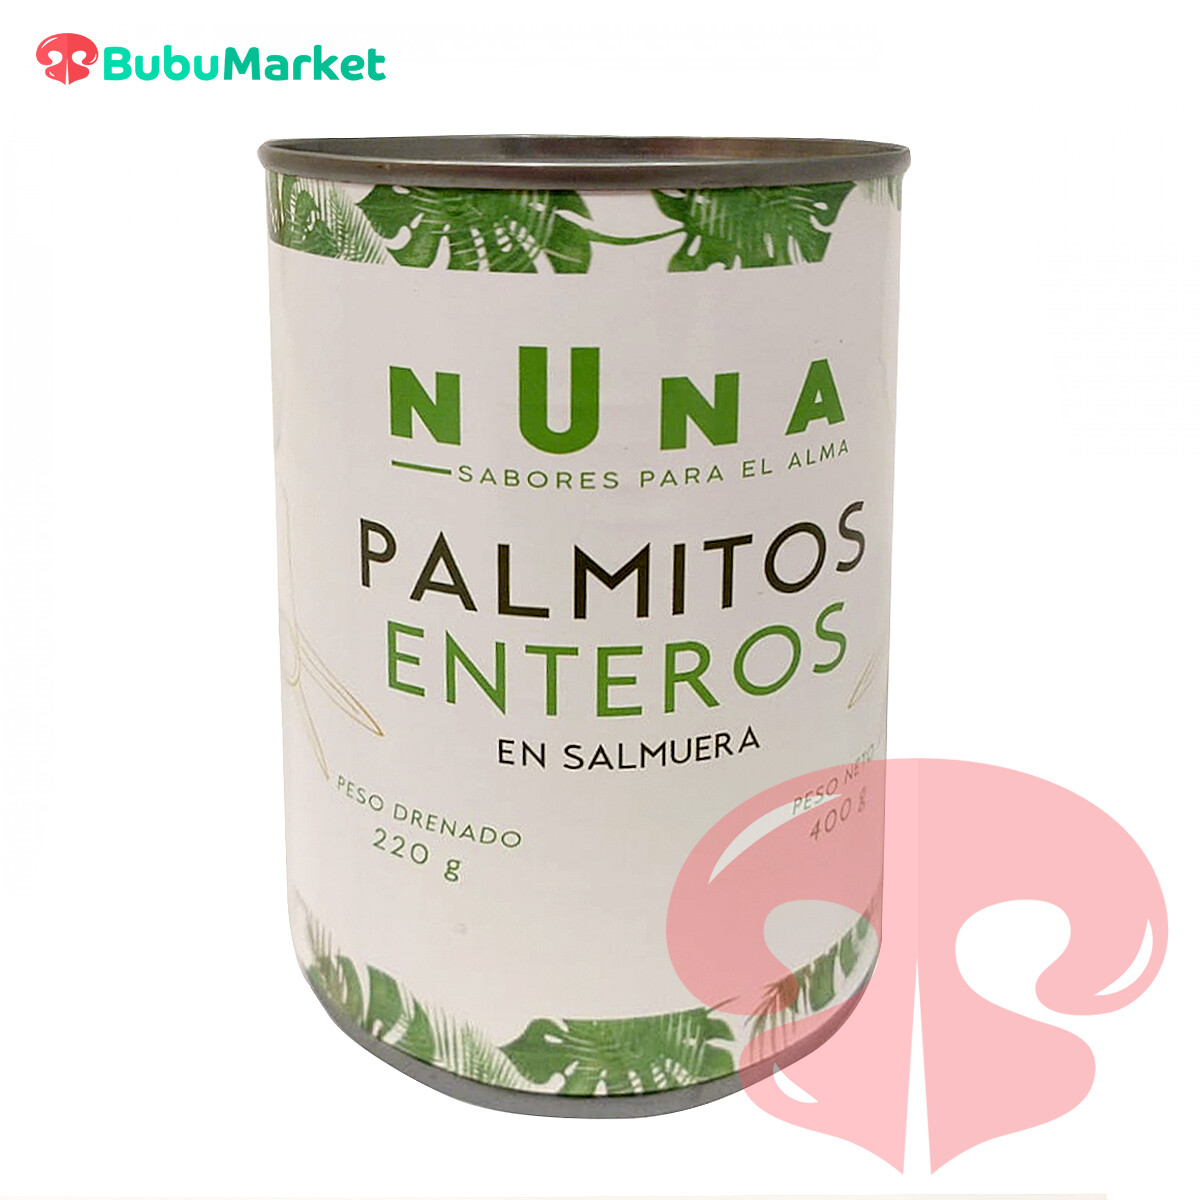 PALMITOS ENTEROS NUNA 400 GR.